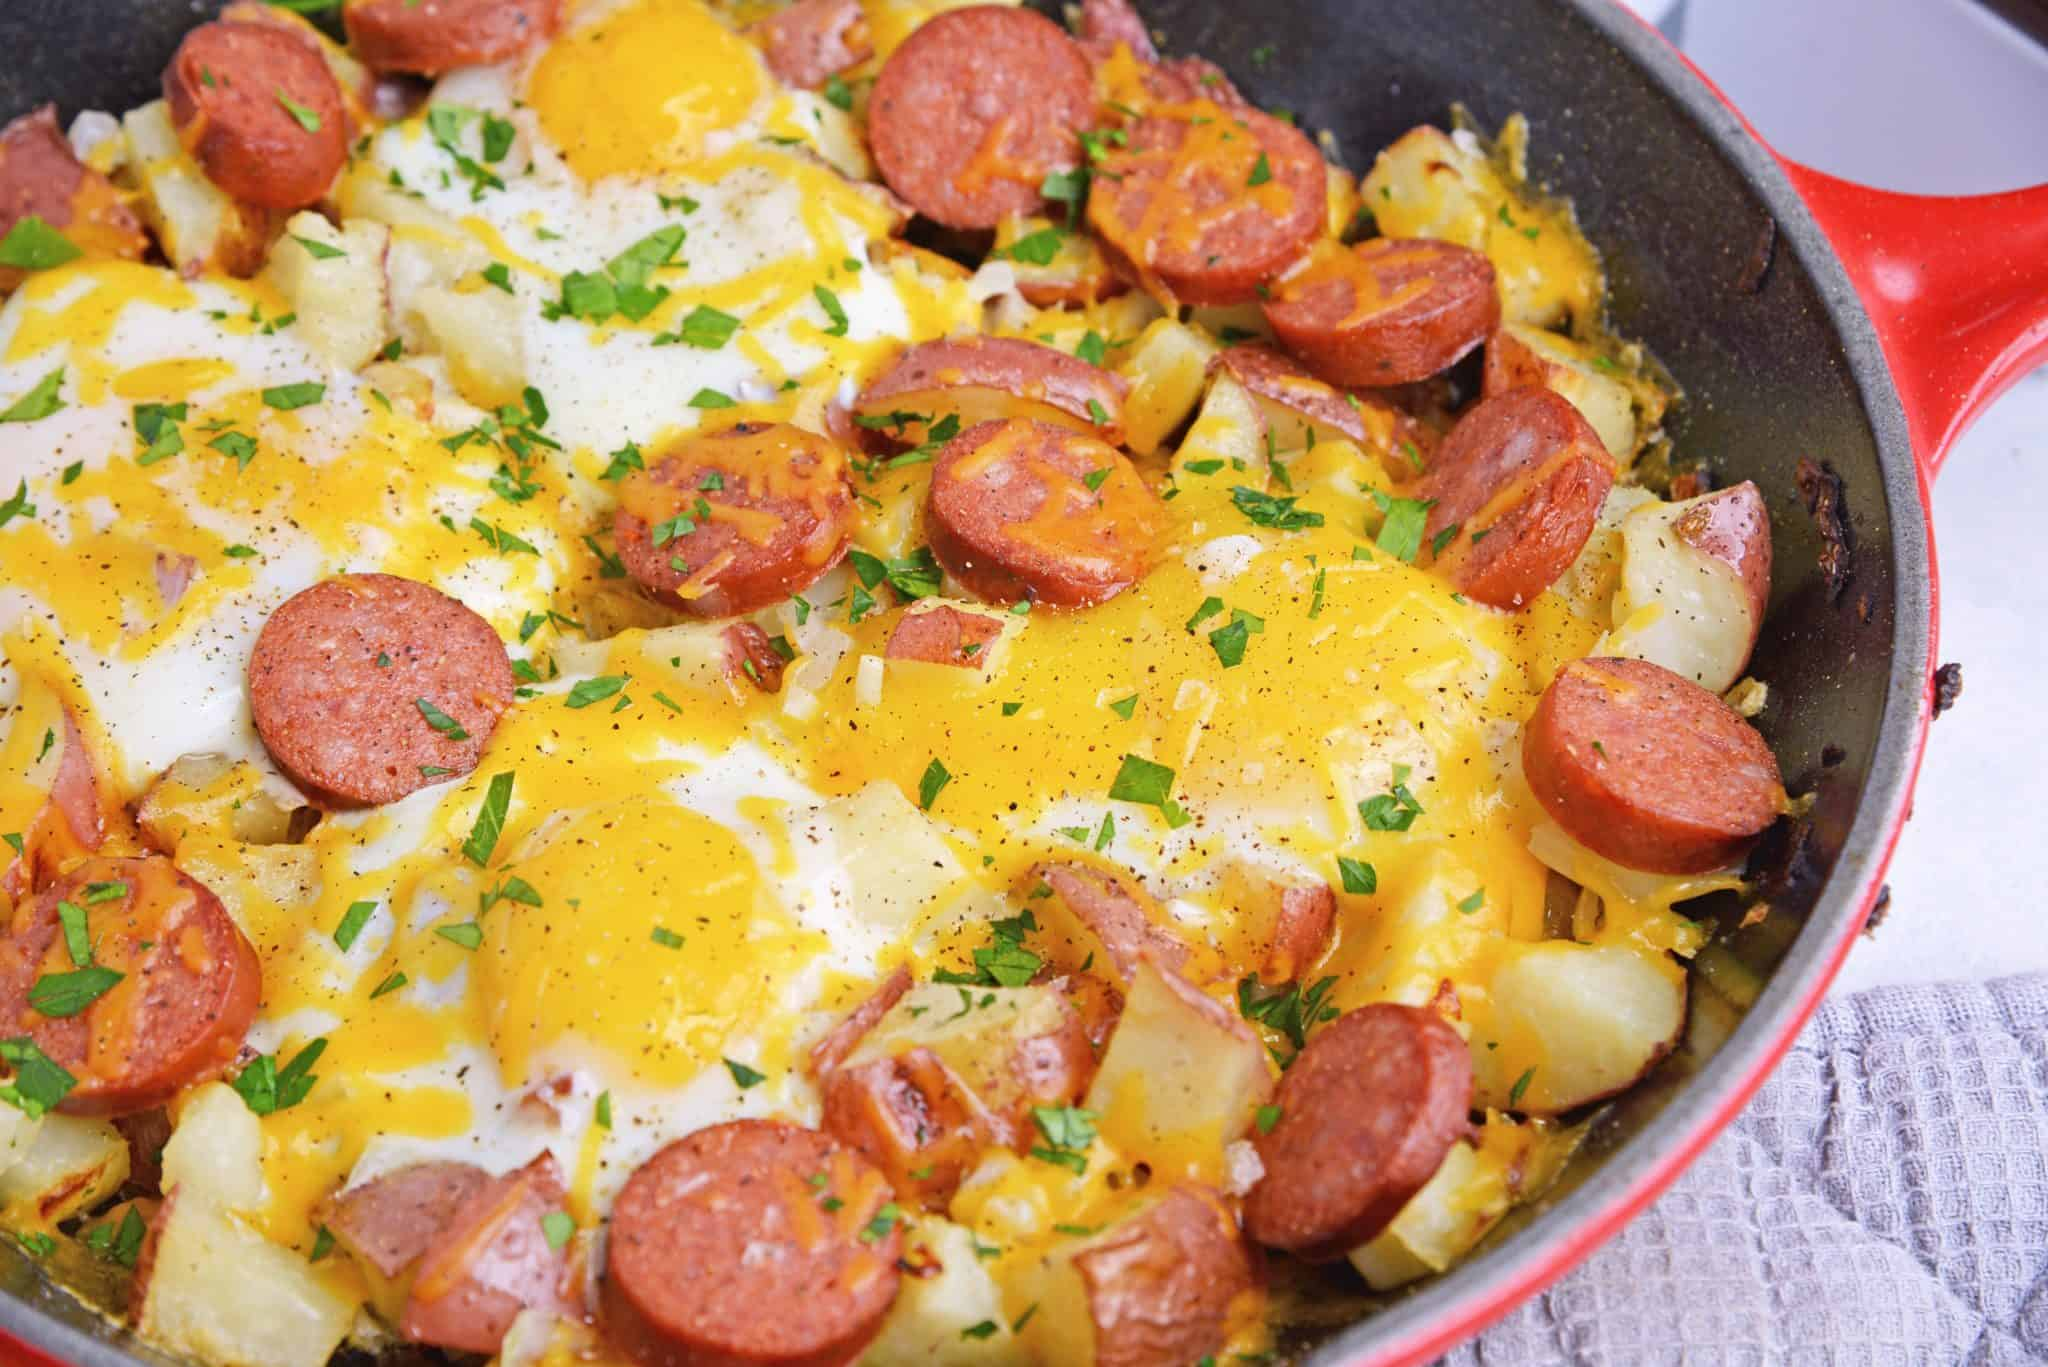 Eggs, cheese and sausage in a skillet - skillet meals